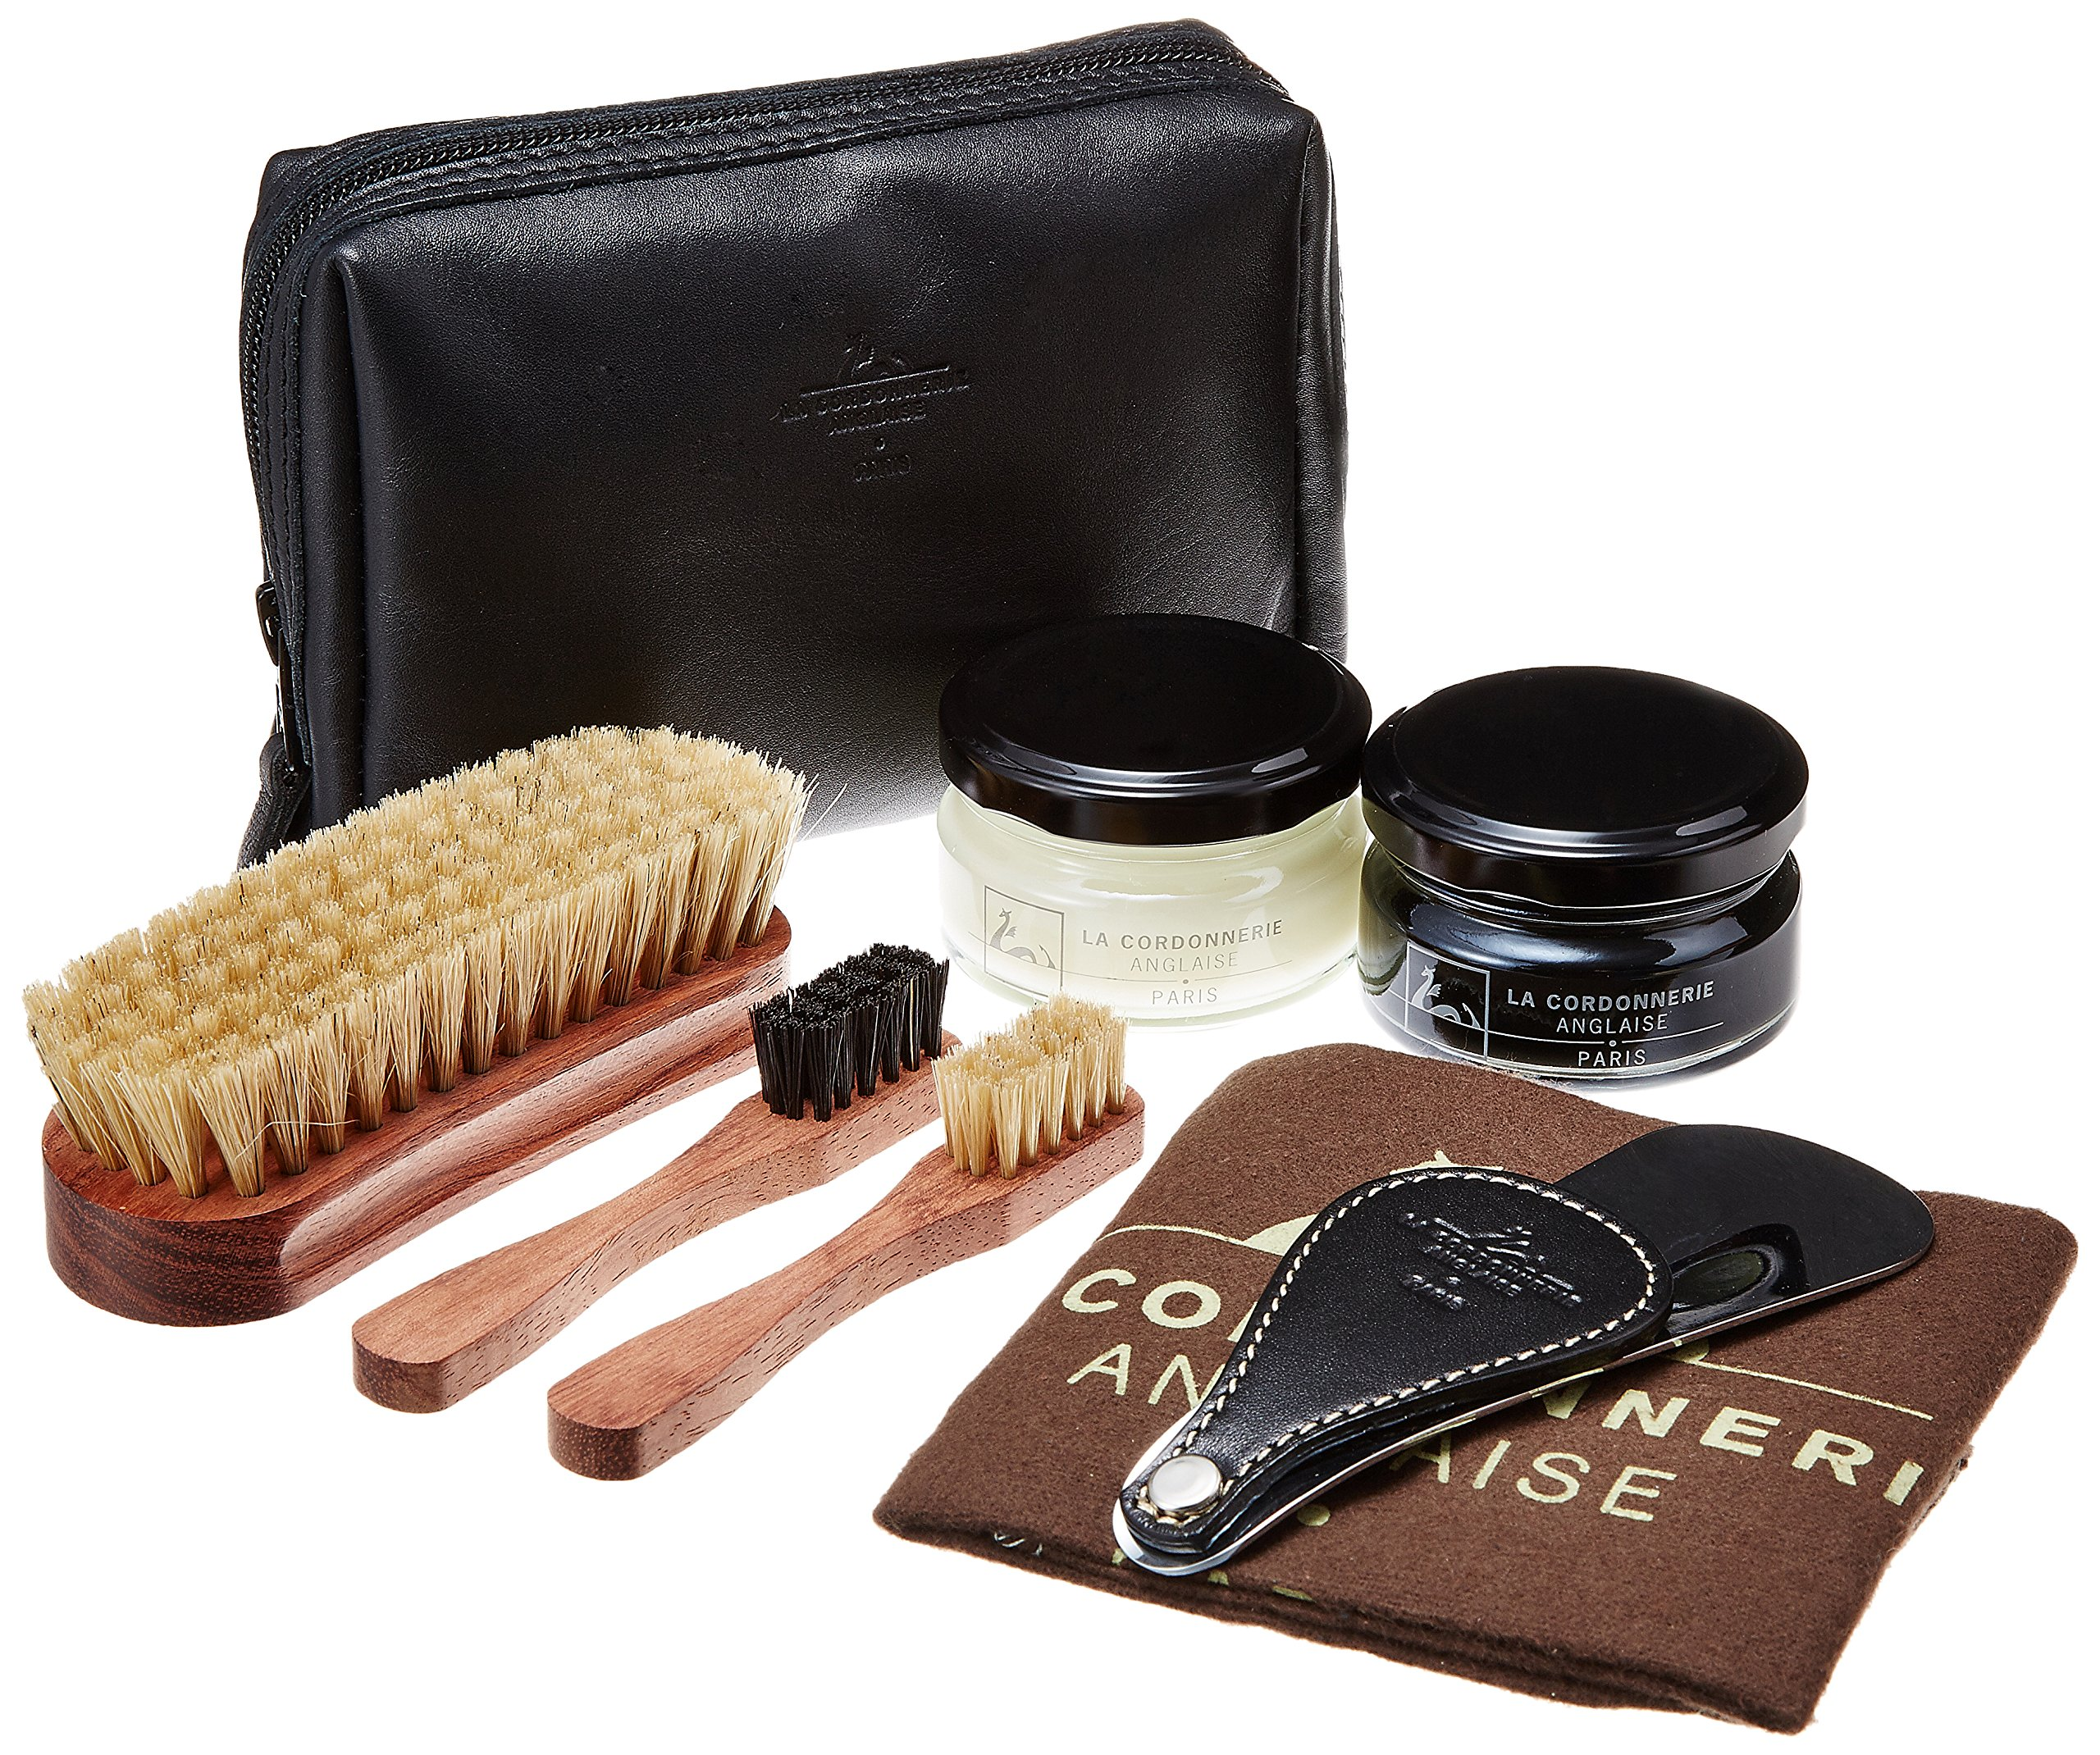 La Cordonnerie Anglaise Luxury Shoe Care Kit -Leather Travel Case - Clipper by Made in France